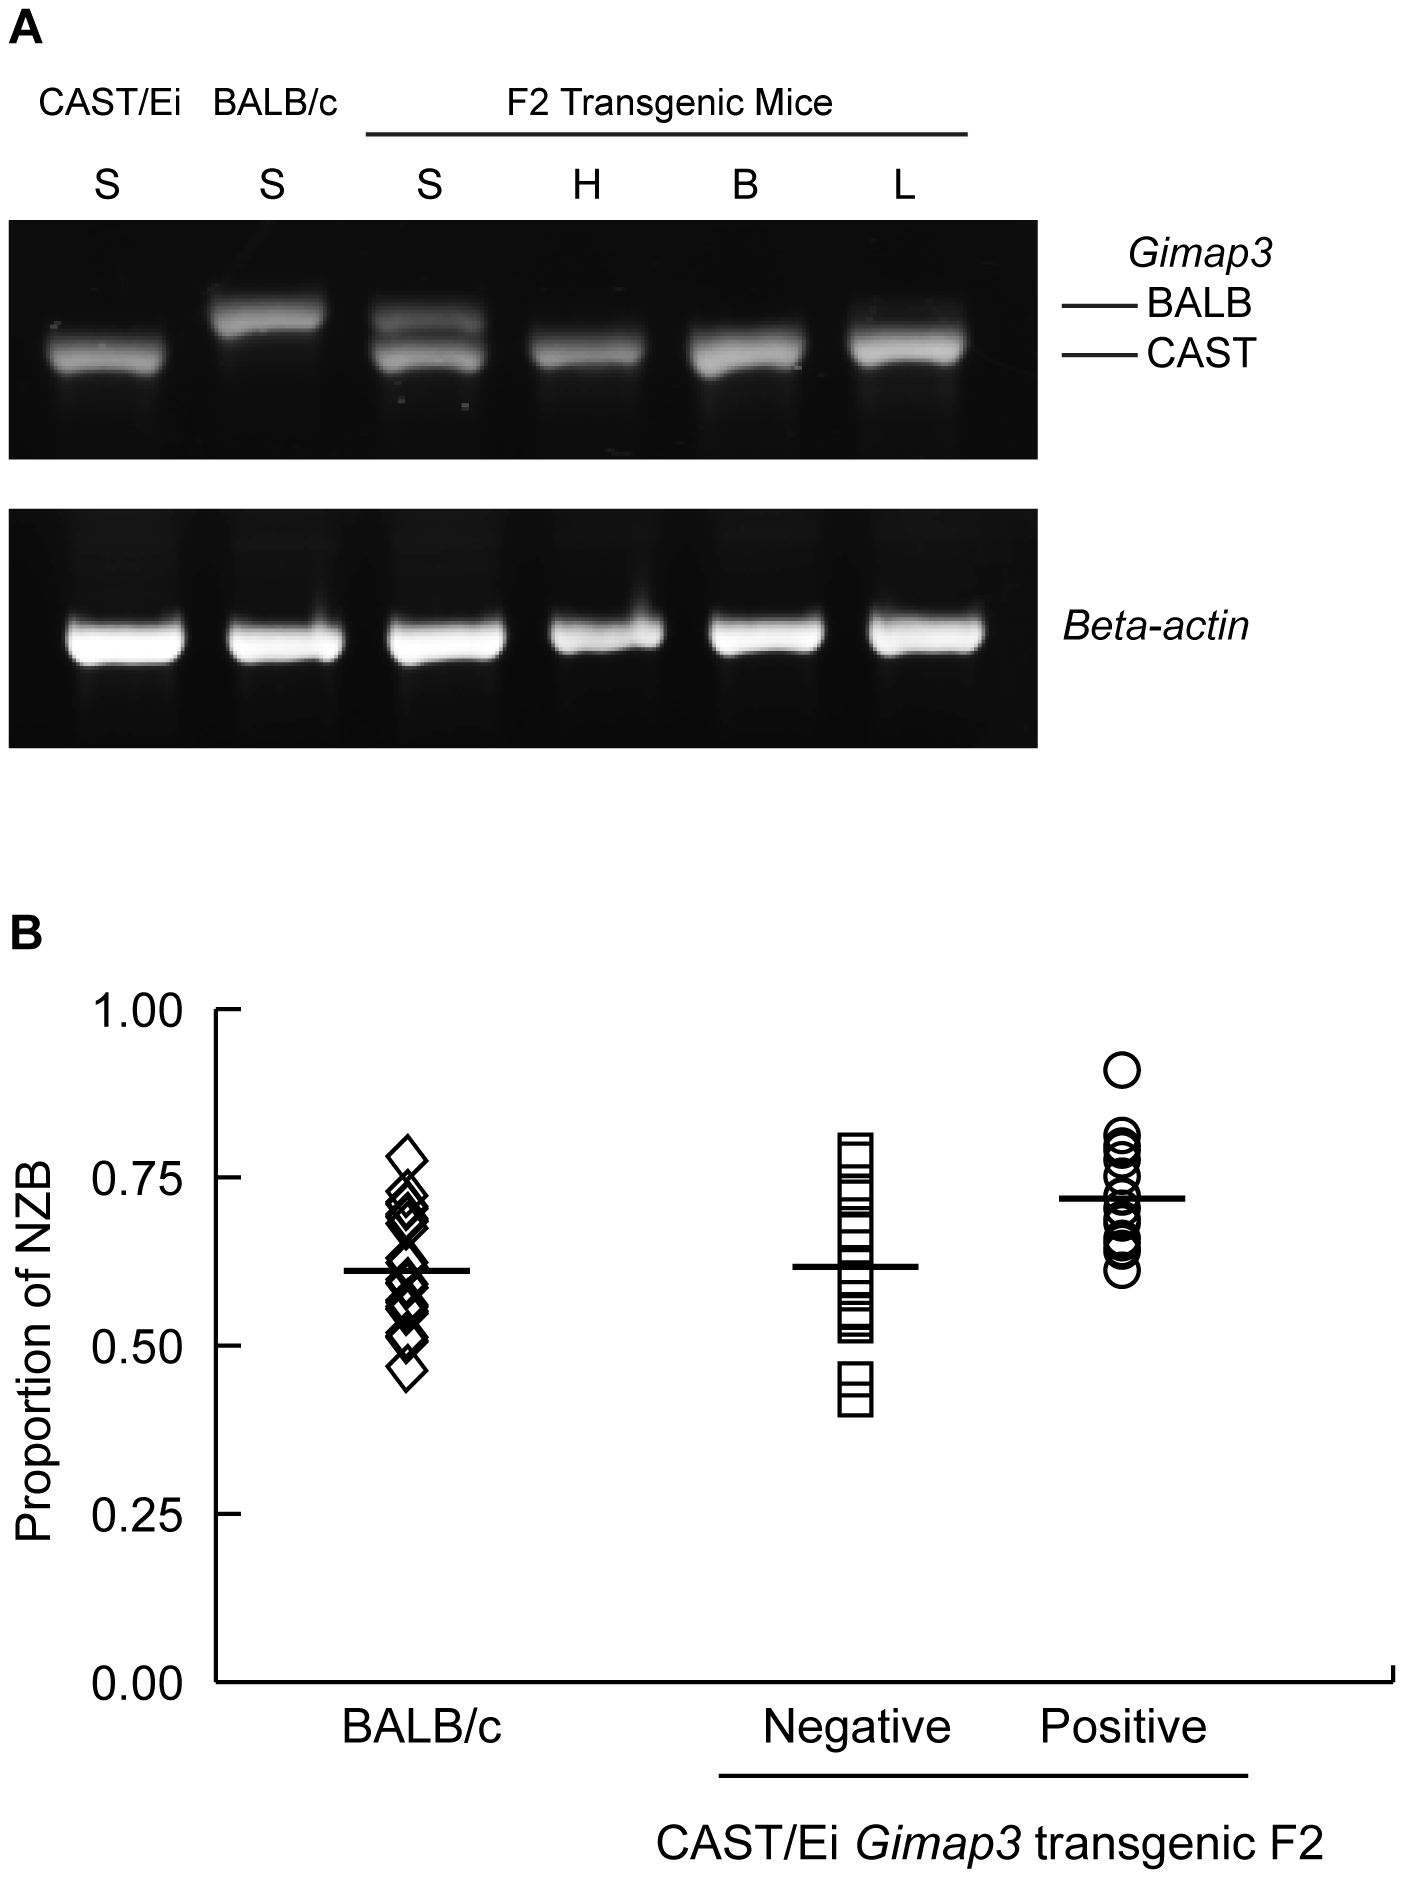 Transgenic expression of CAST/Ei <i>Gimap3</i> cDNA in heteroplasmic mice slows the rate of splenic mtDNA segregation.